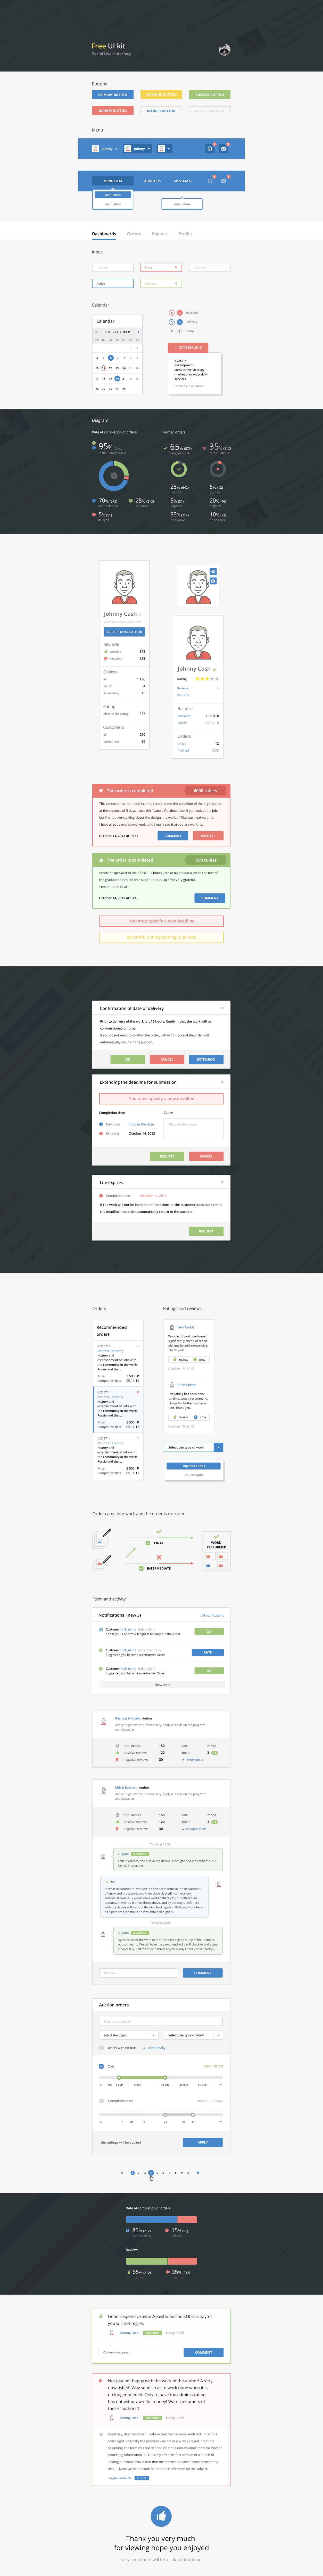 UI Web Social User Interface